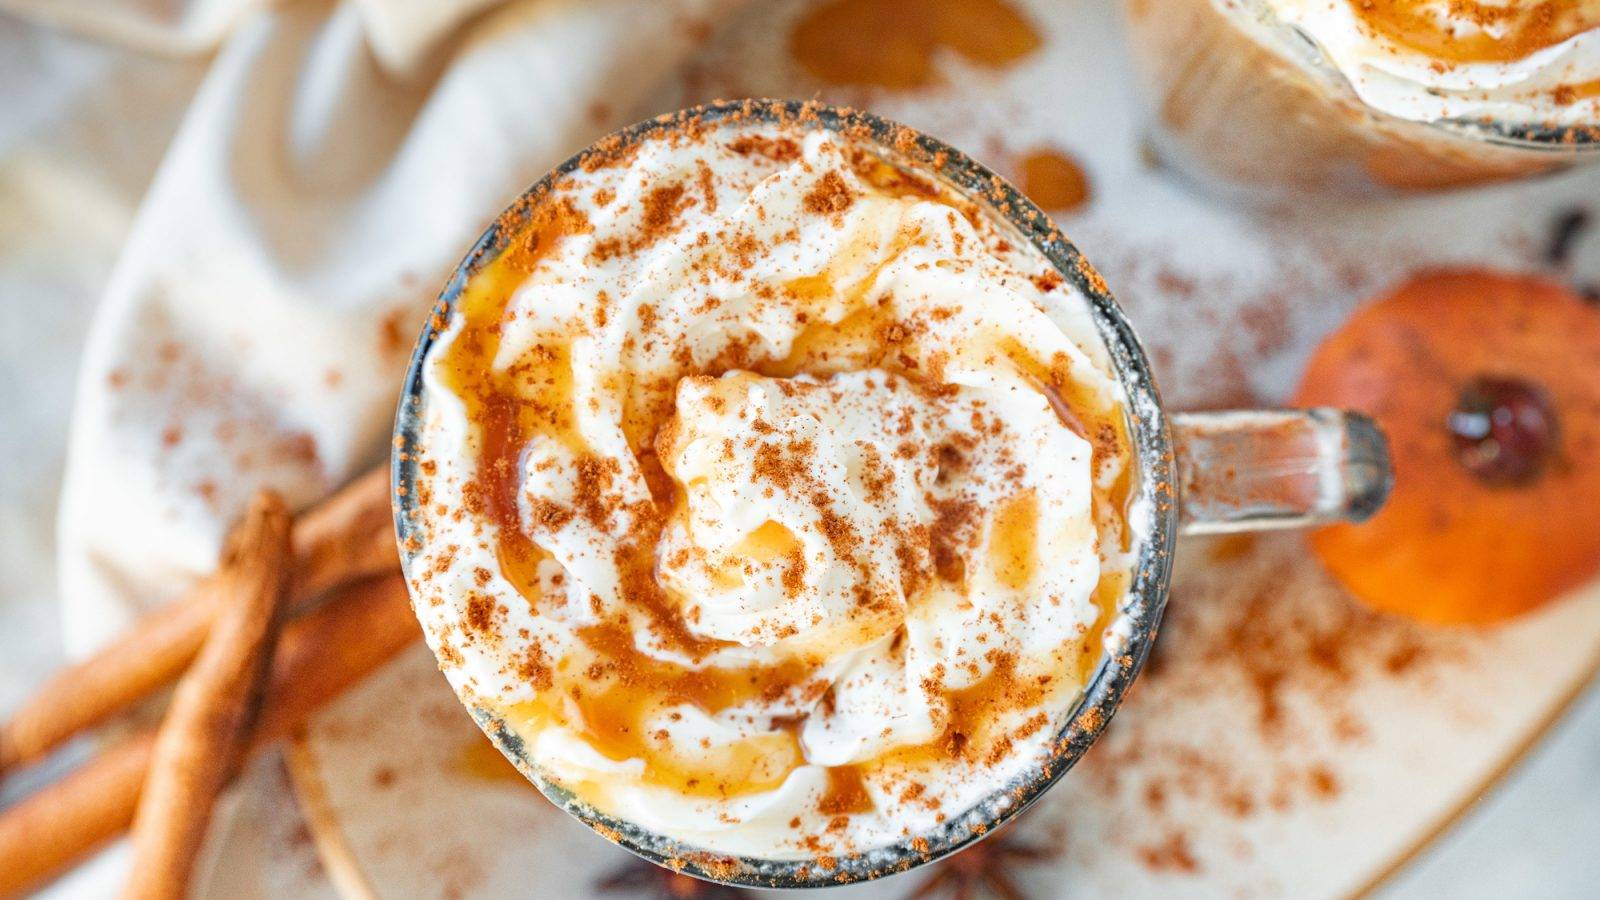 cozy vegan pumpkin spice latte is one of the best vegan fall recipes